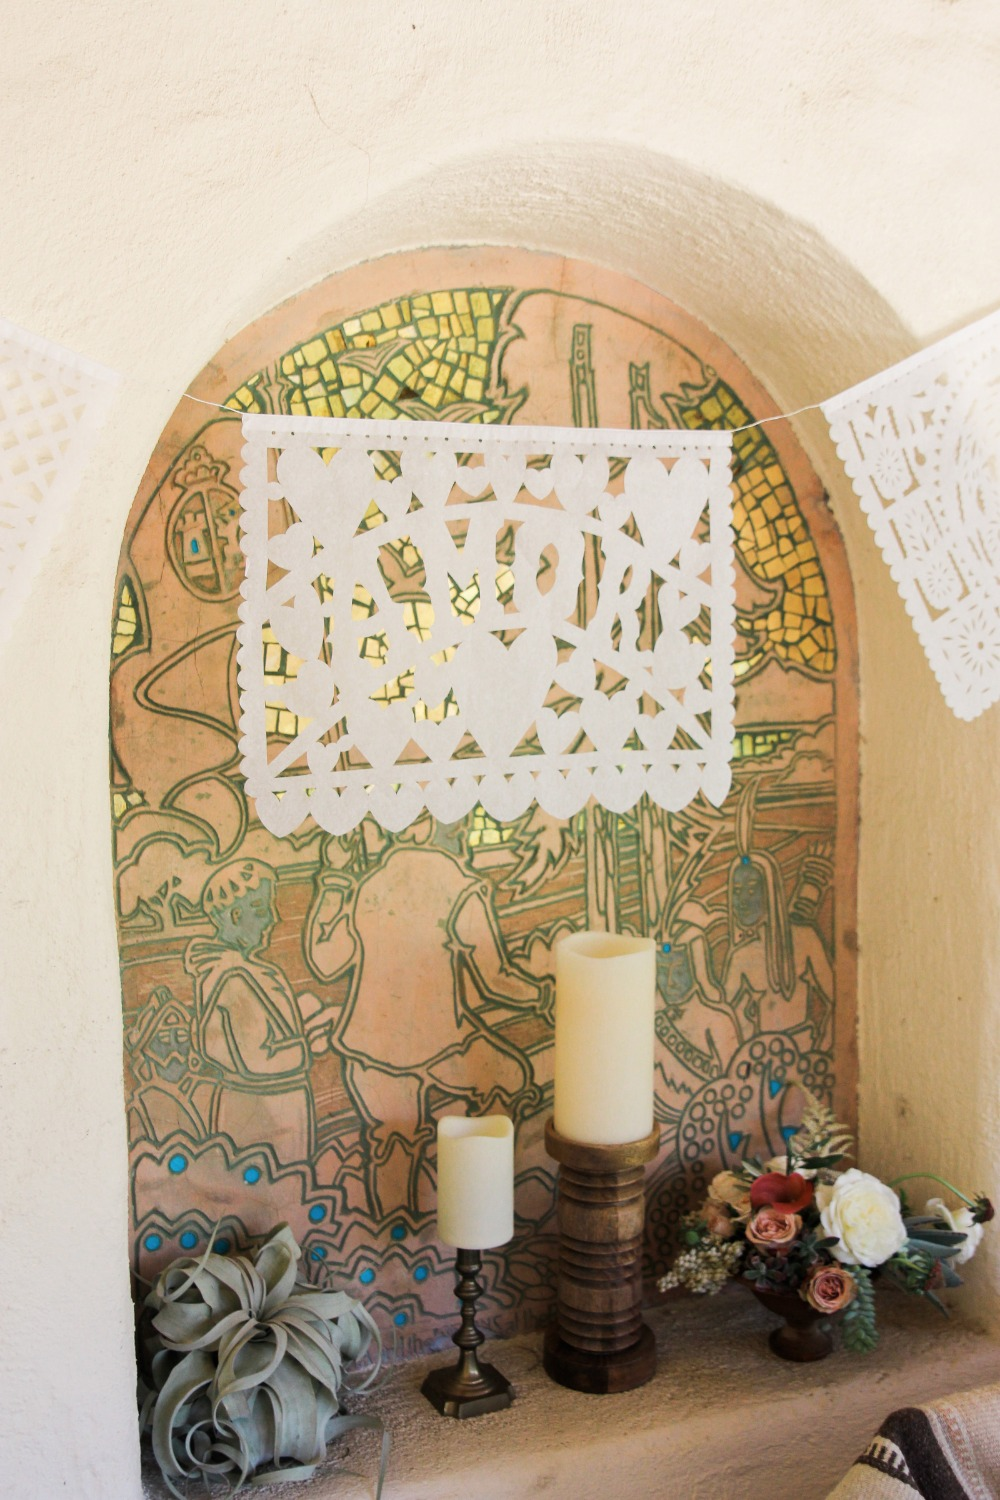 Paper lace banner